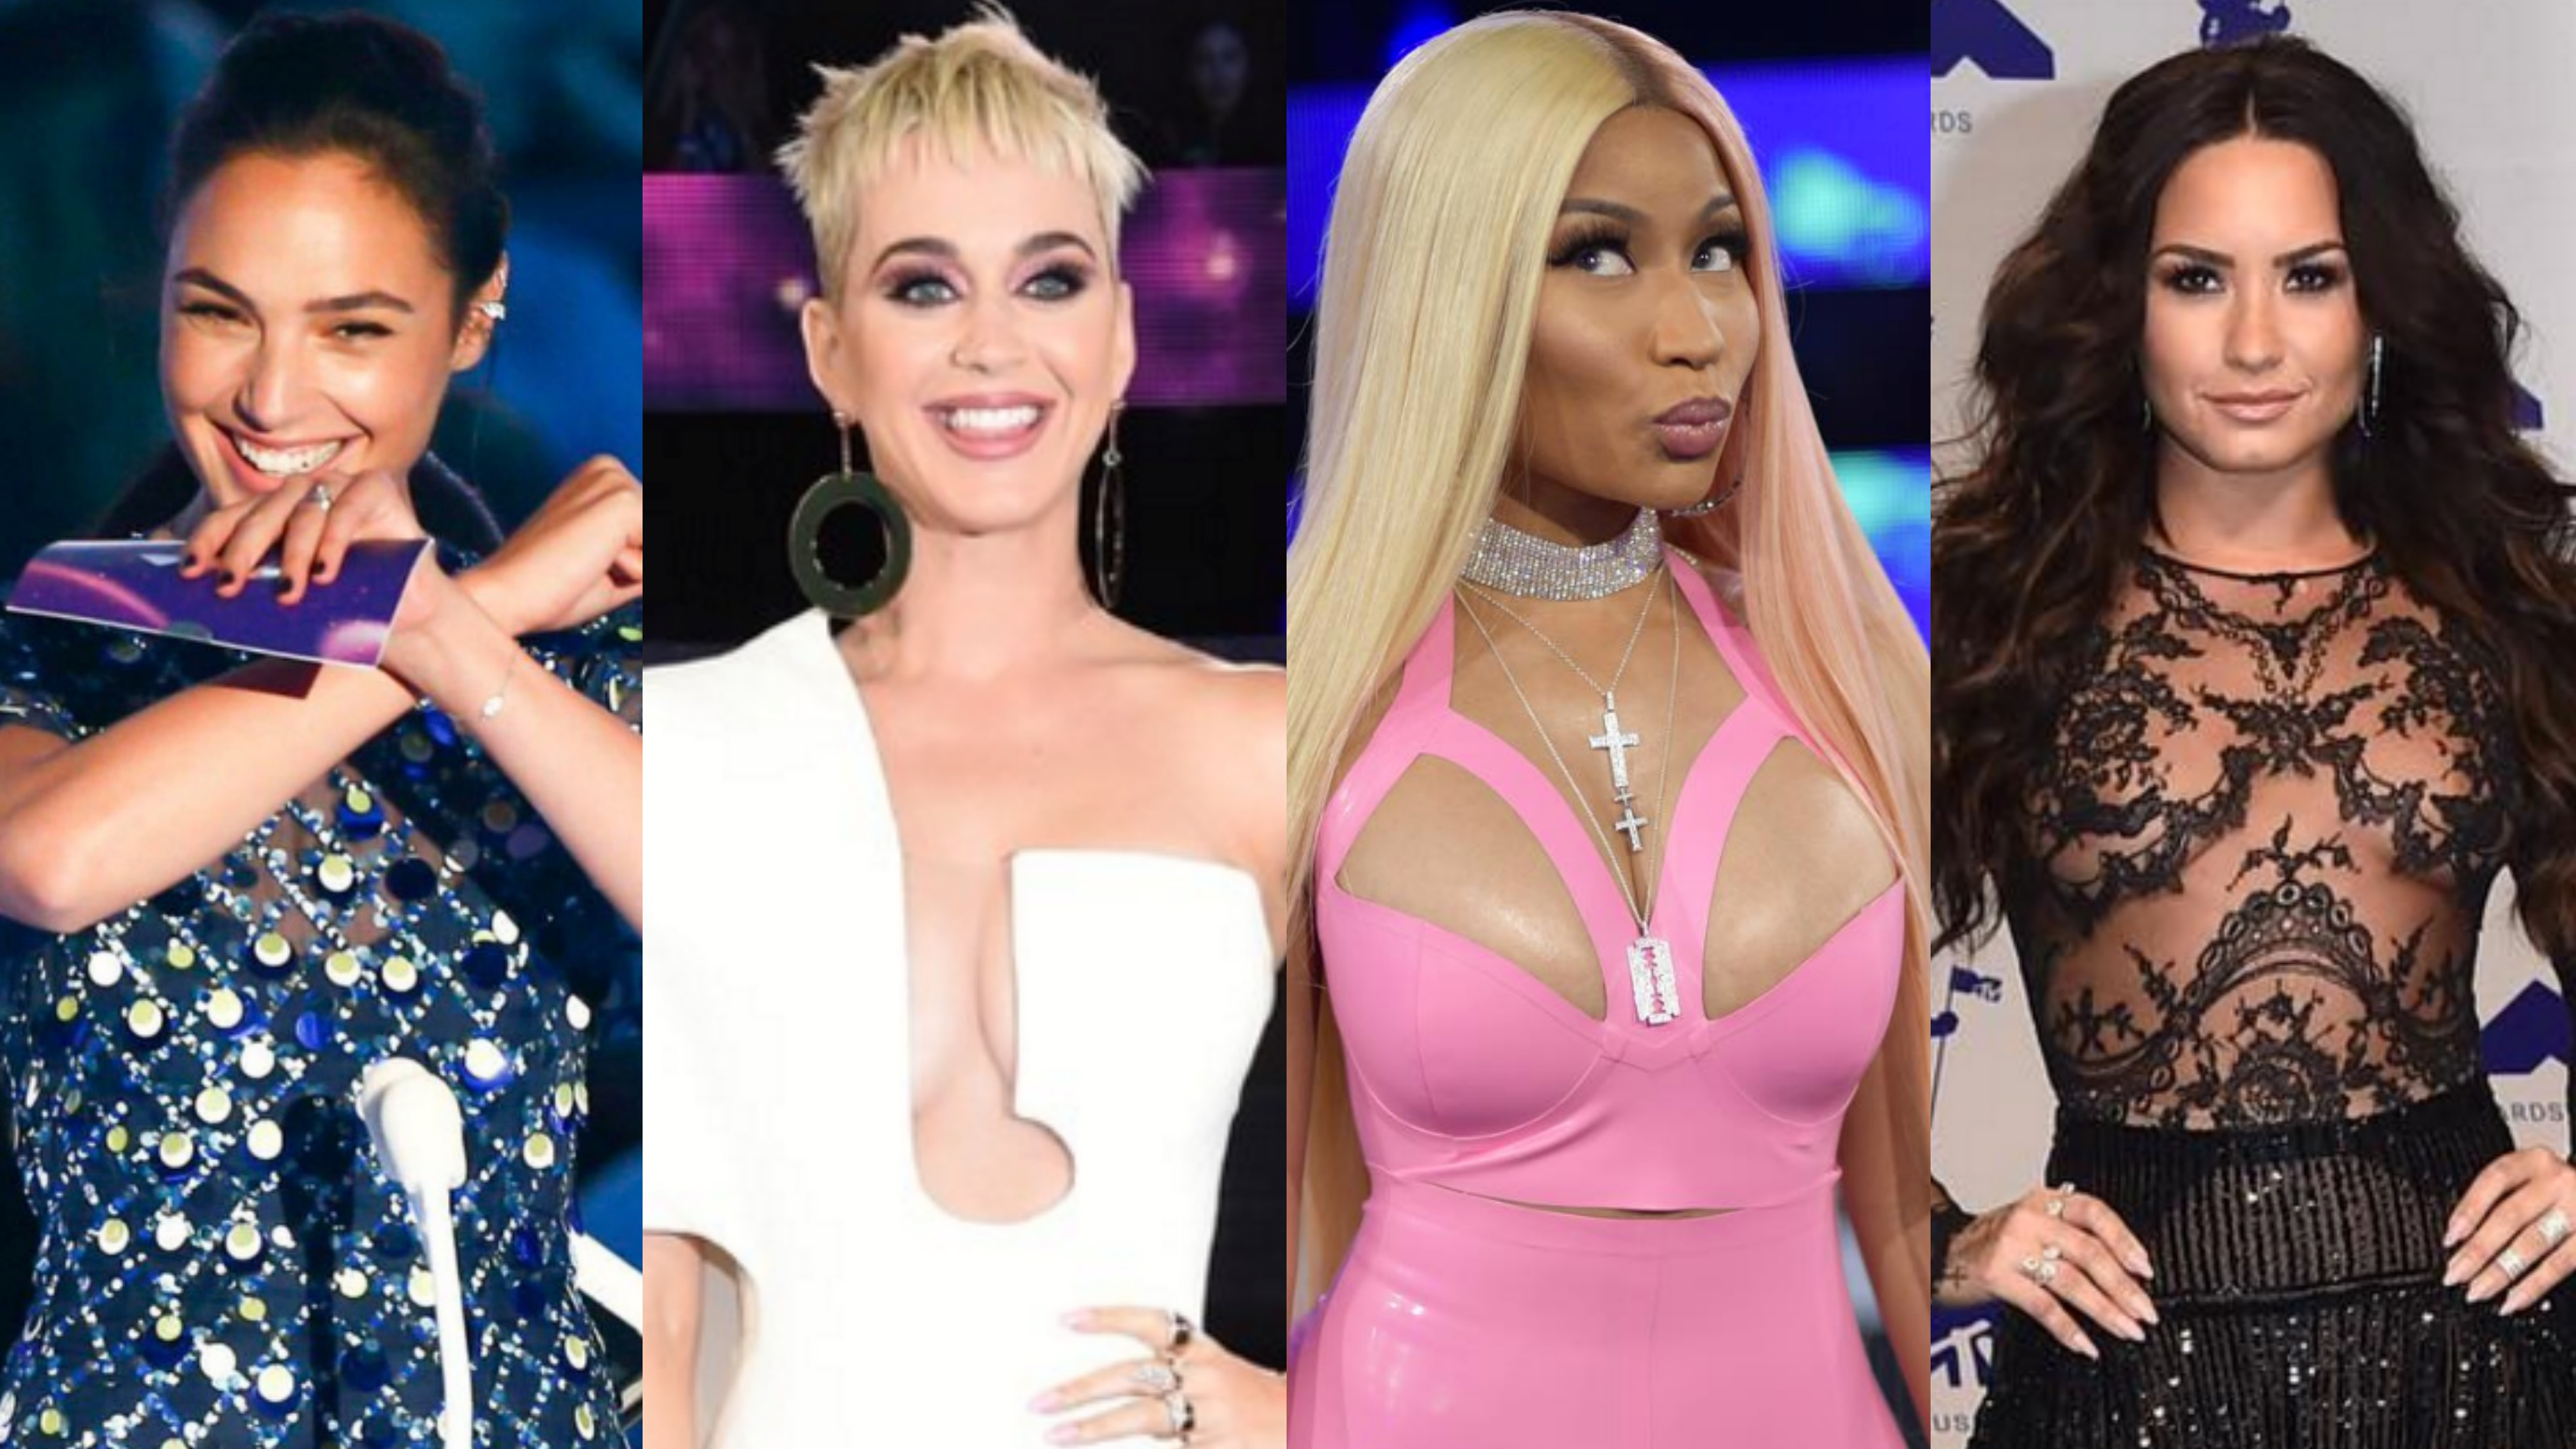 In Photos Stars At The Mtv Video Music Awards 2017